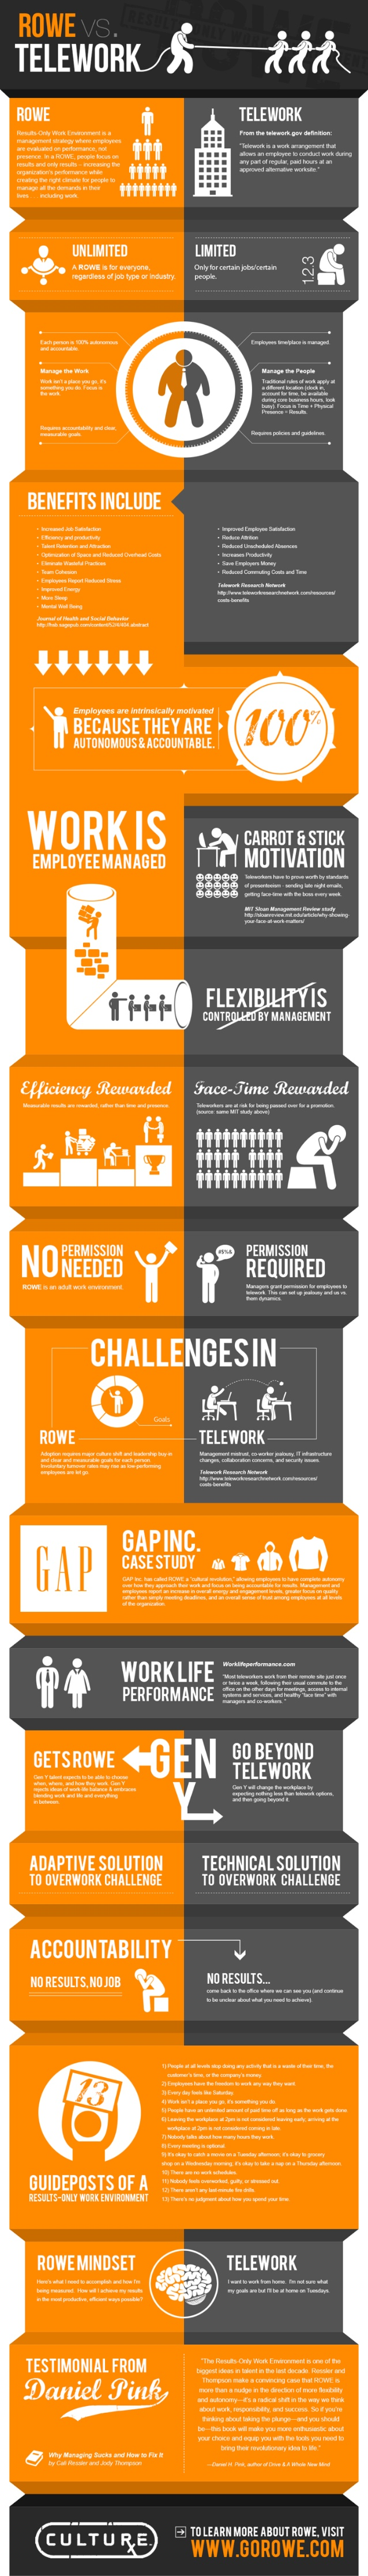 results only work environment infographic